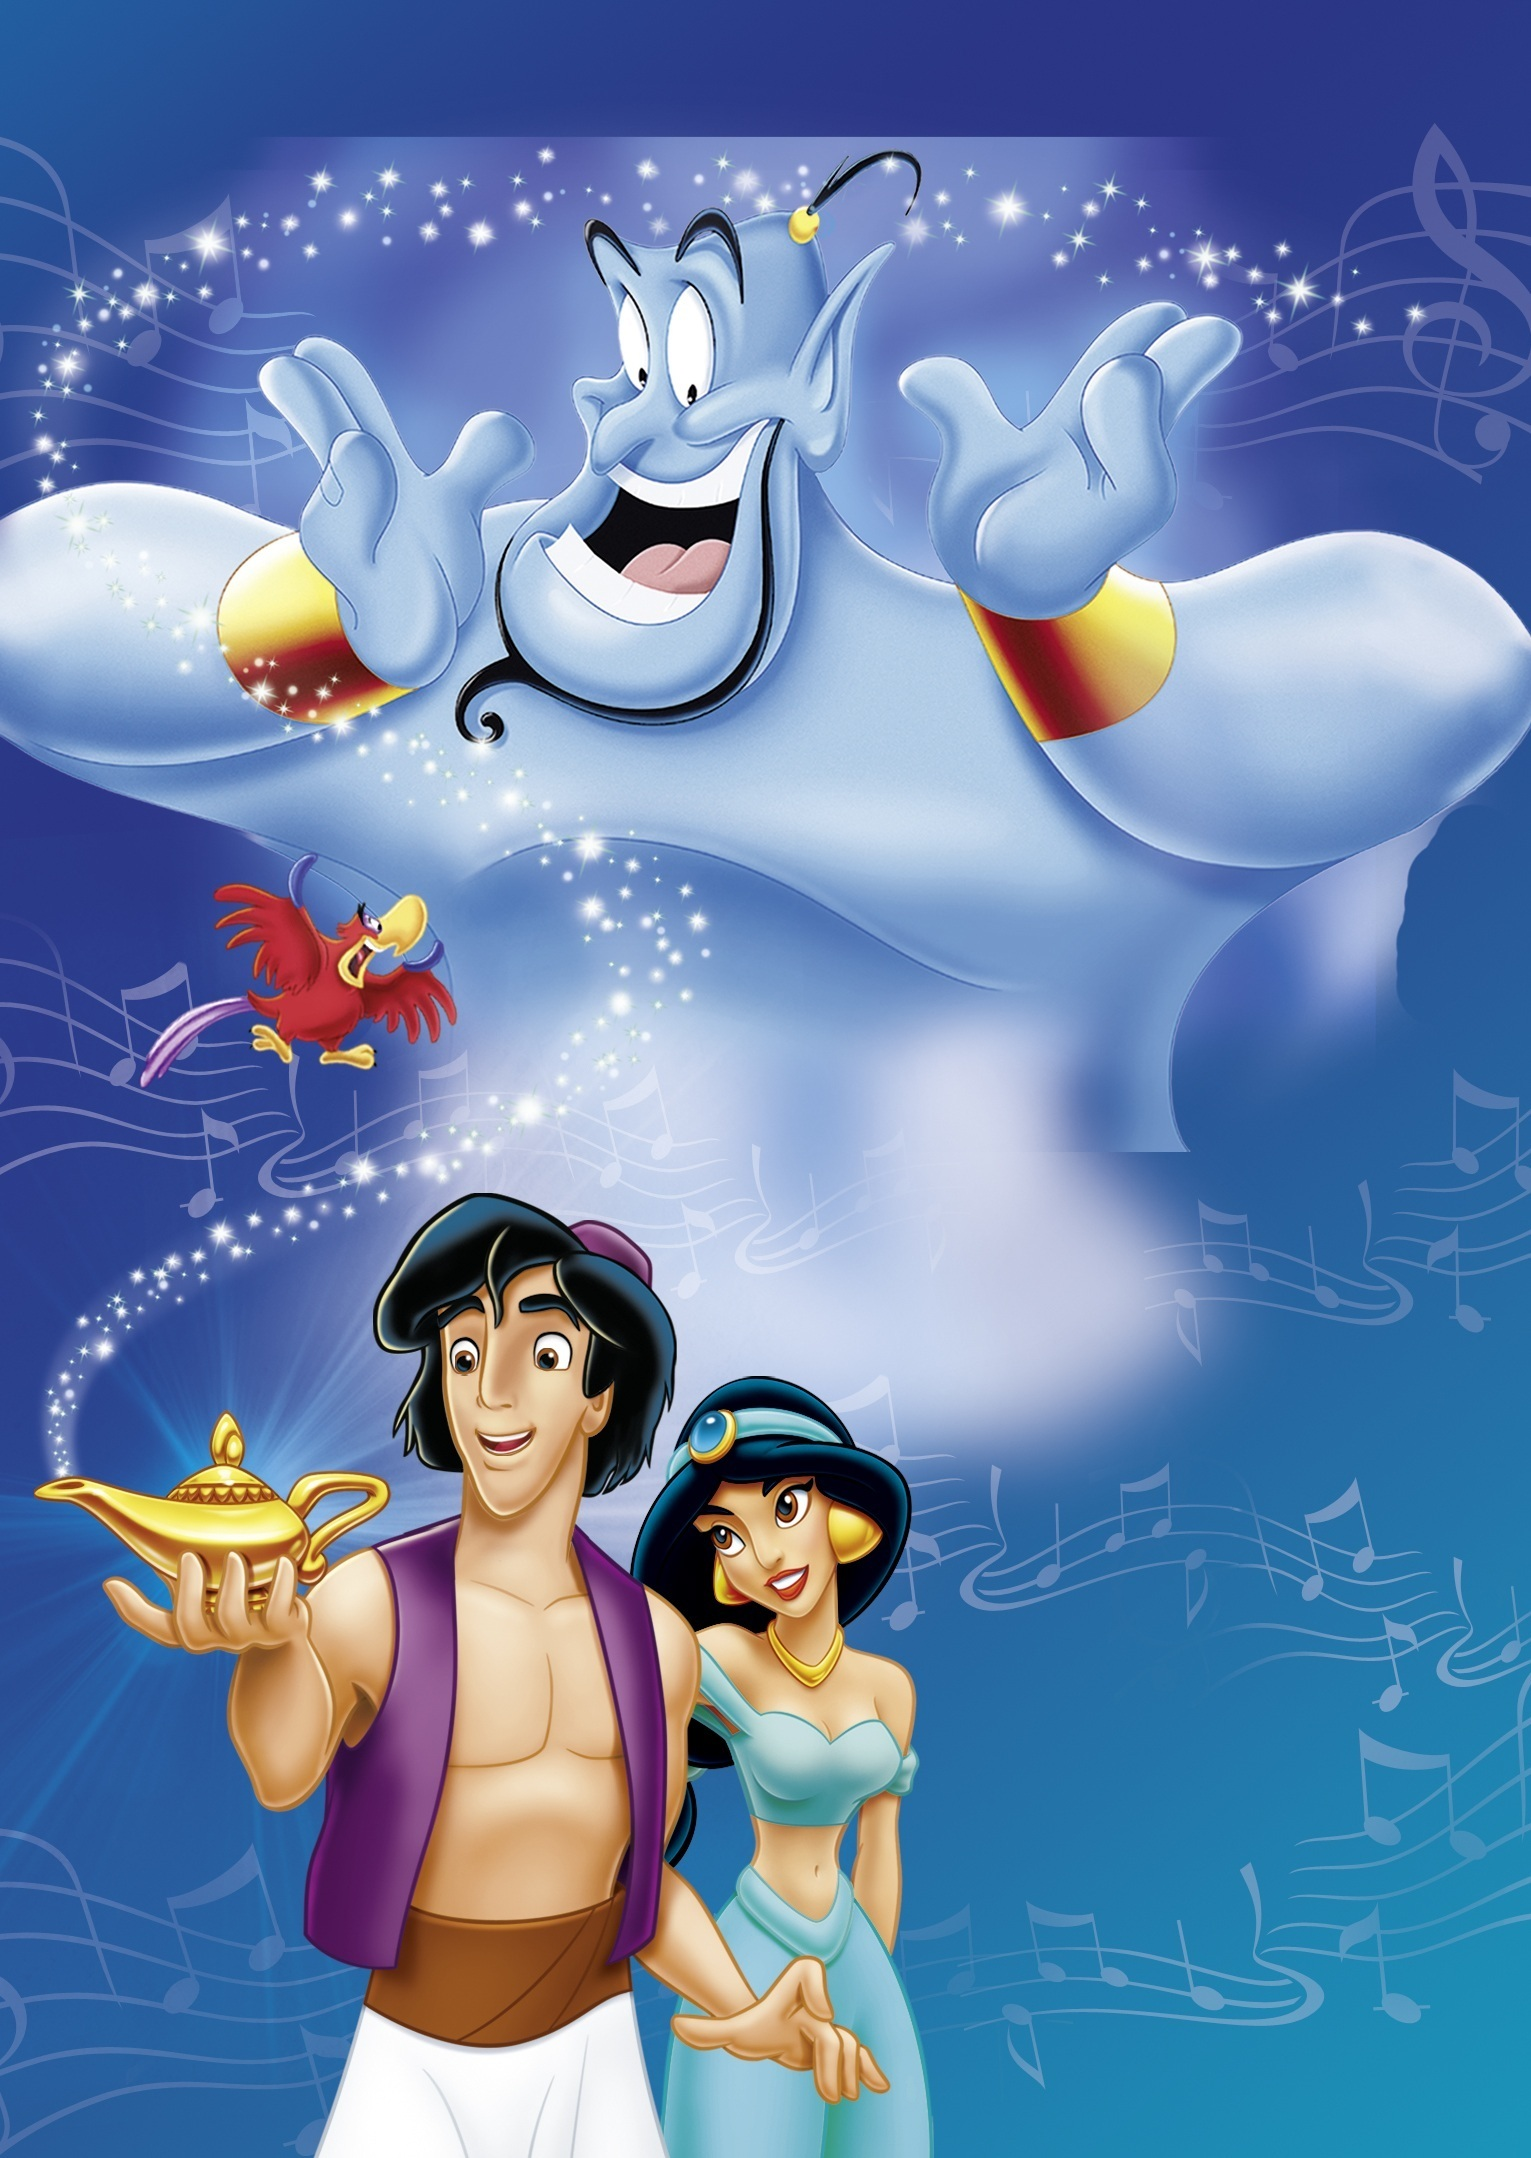 Aladdin Wallpaper Iphone Aladdin Wallpapers High Quality Download Free